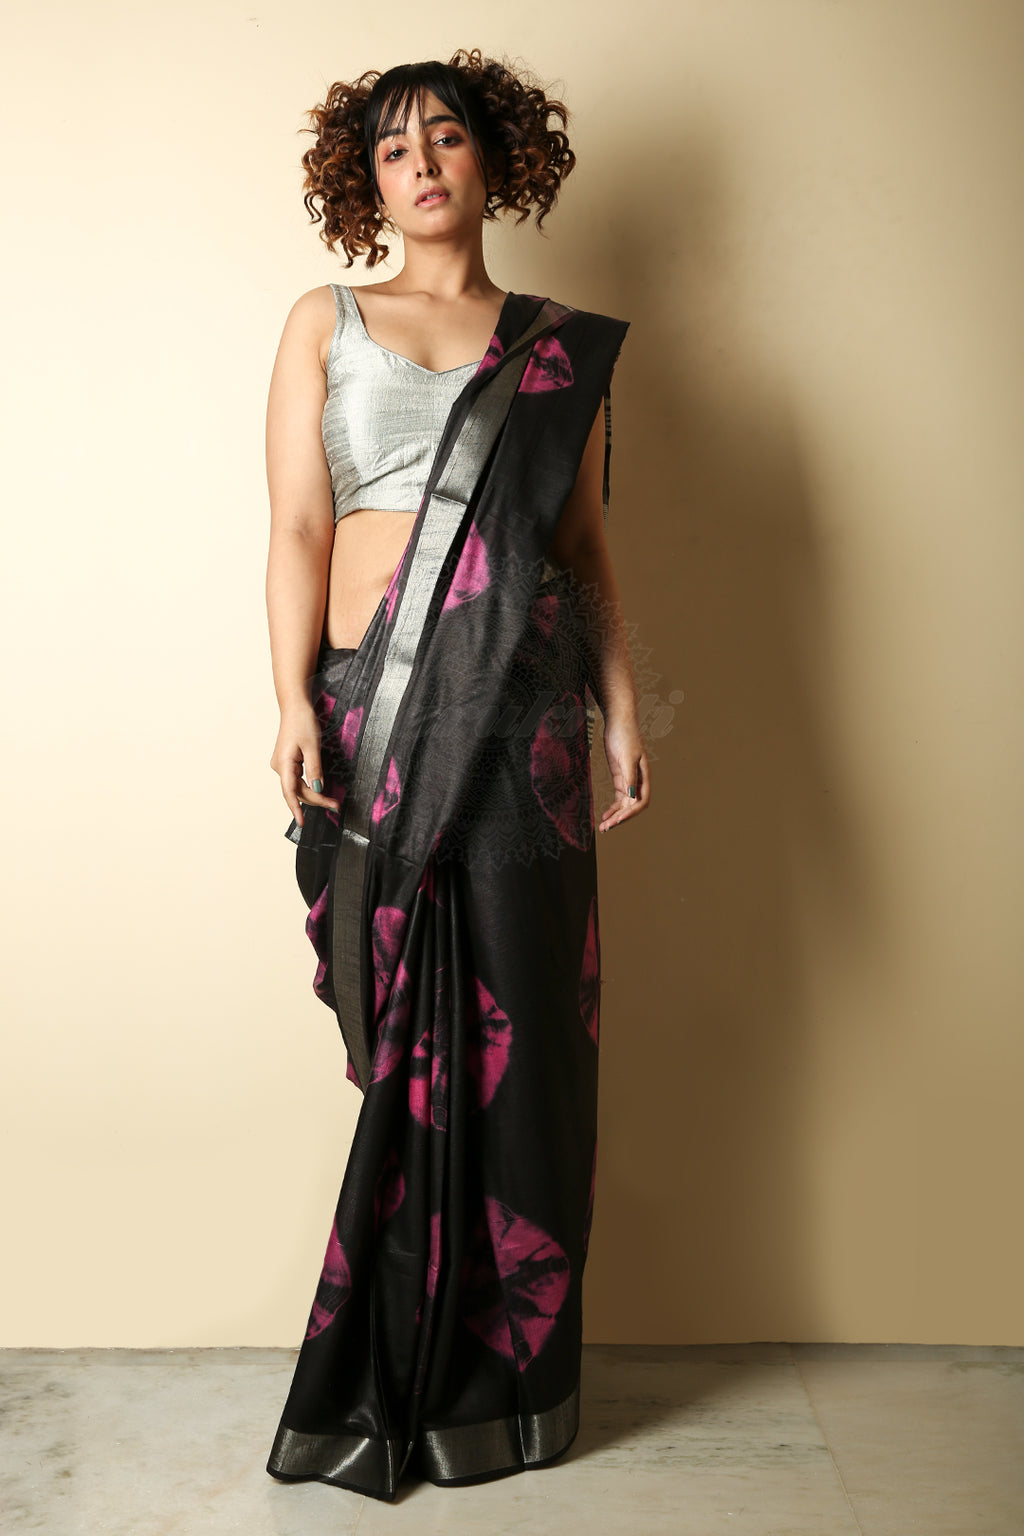 Black Tie And Dye Bandhani Printed Saree With Zari Border And Pallu - Charukriti.co.in